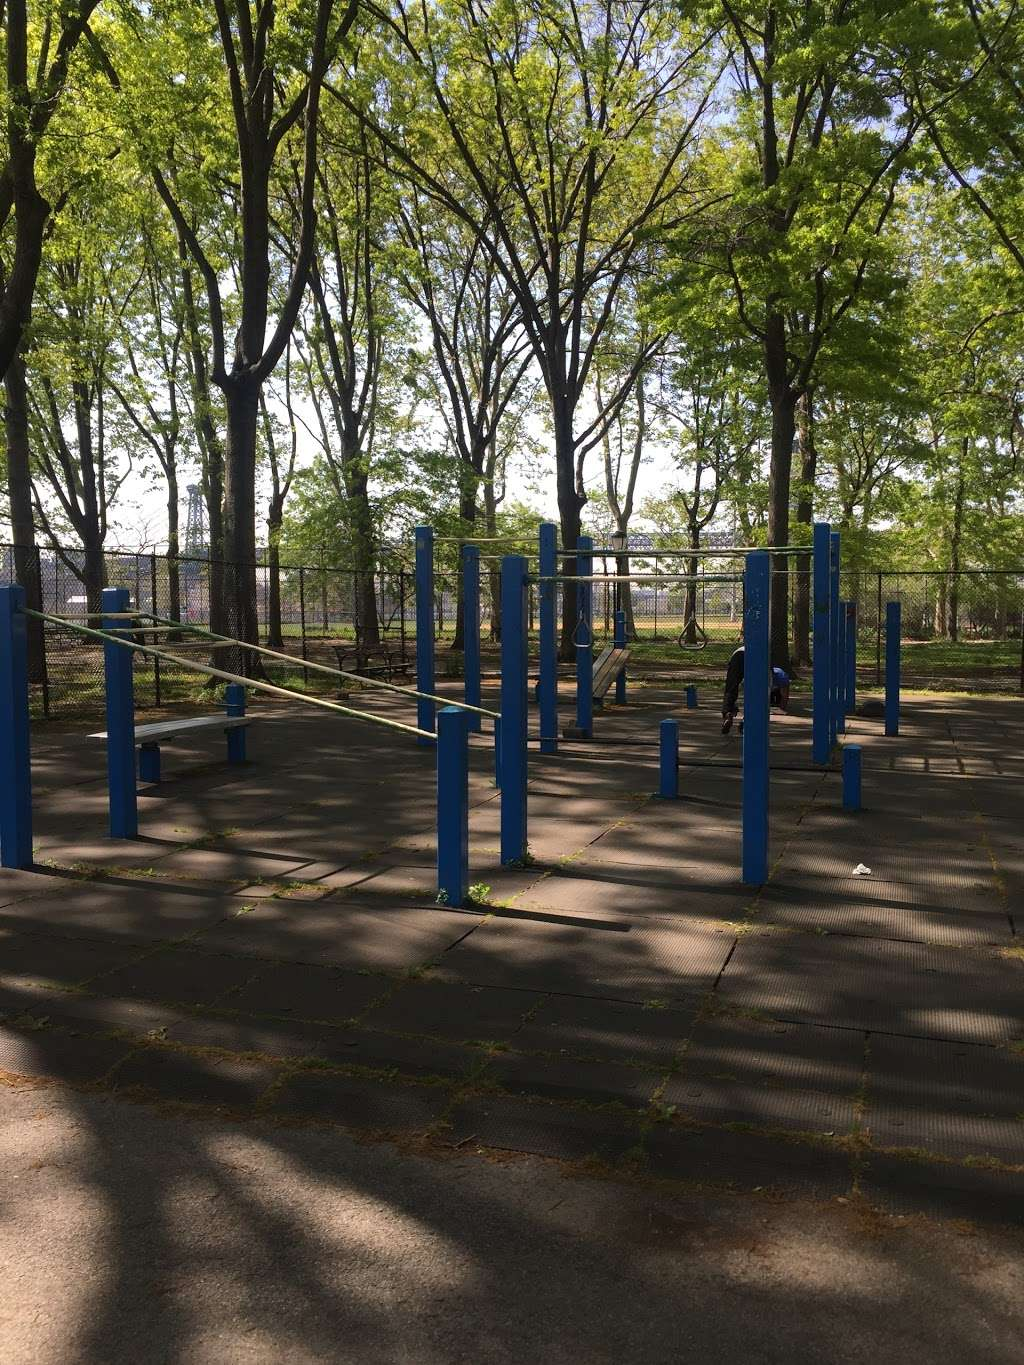 East River Outdoor Gym - gym  | Photo 1 of 1 | Address: E River Bikeway, New York, NY 10009, USA | Phone: (212) 639-9675